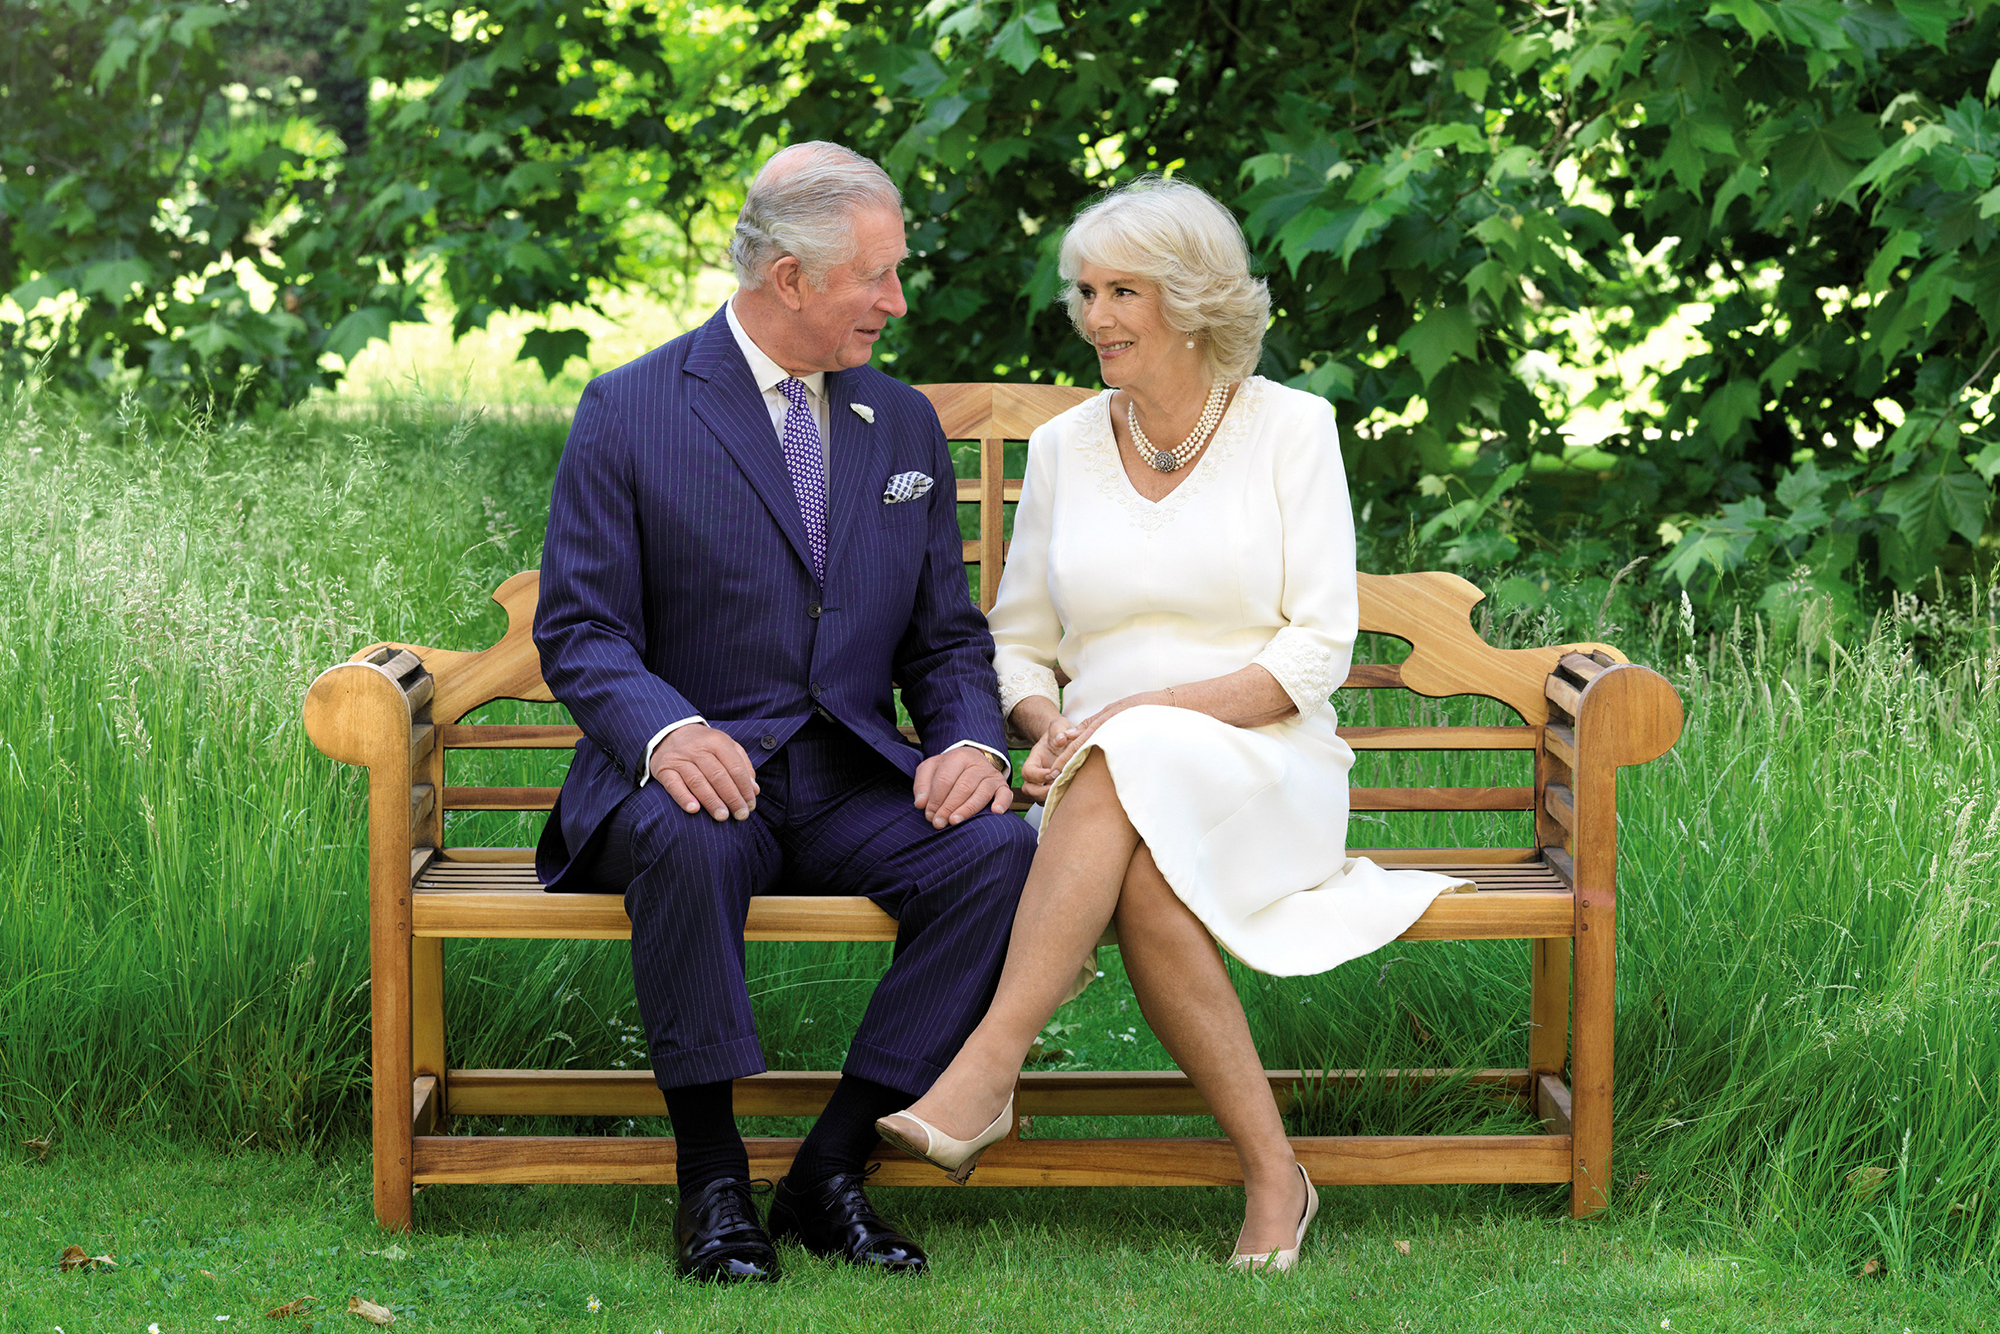 """prince-charles-holiday-card-2018 - Charles and Camilla wished everyone a """"very Happy Christmas and New Year"""" in their 2018 Christmas card."""